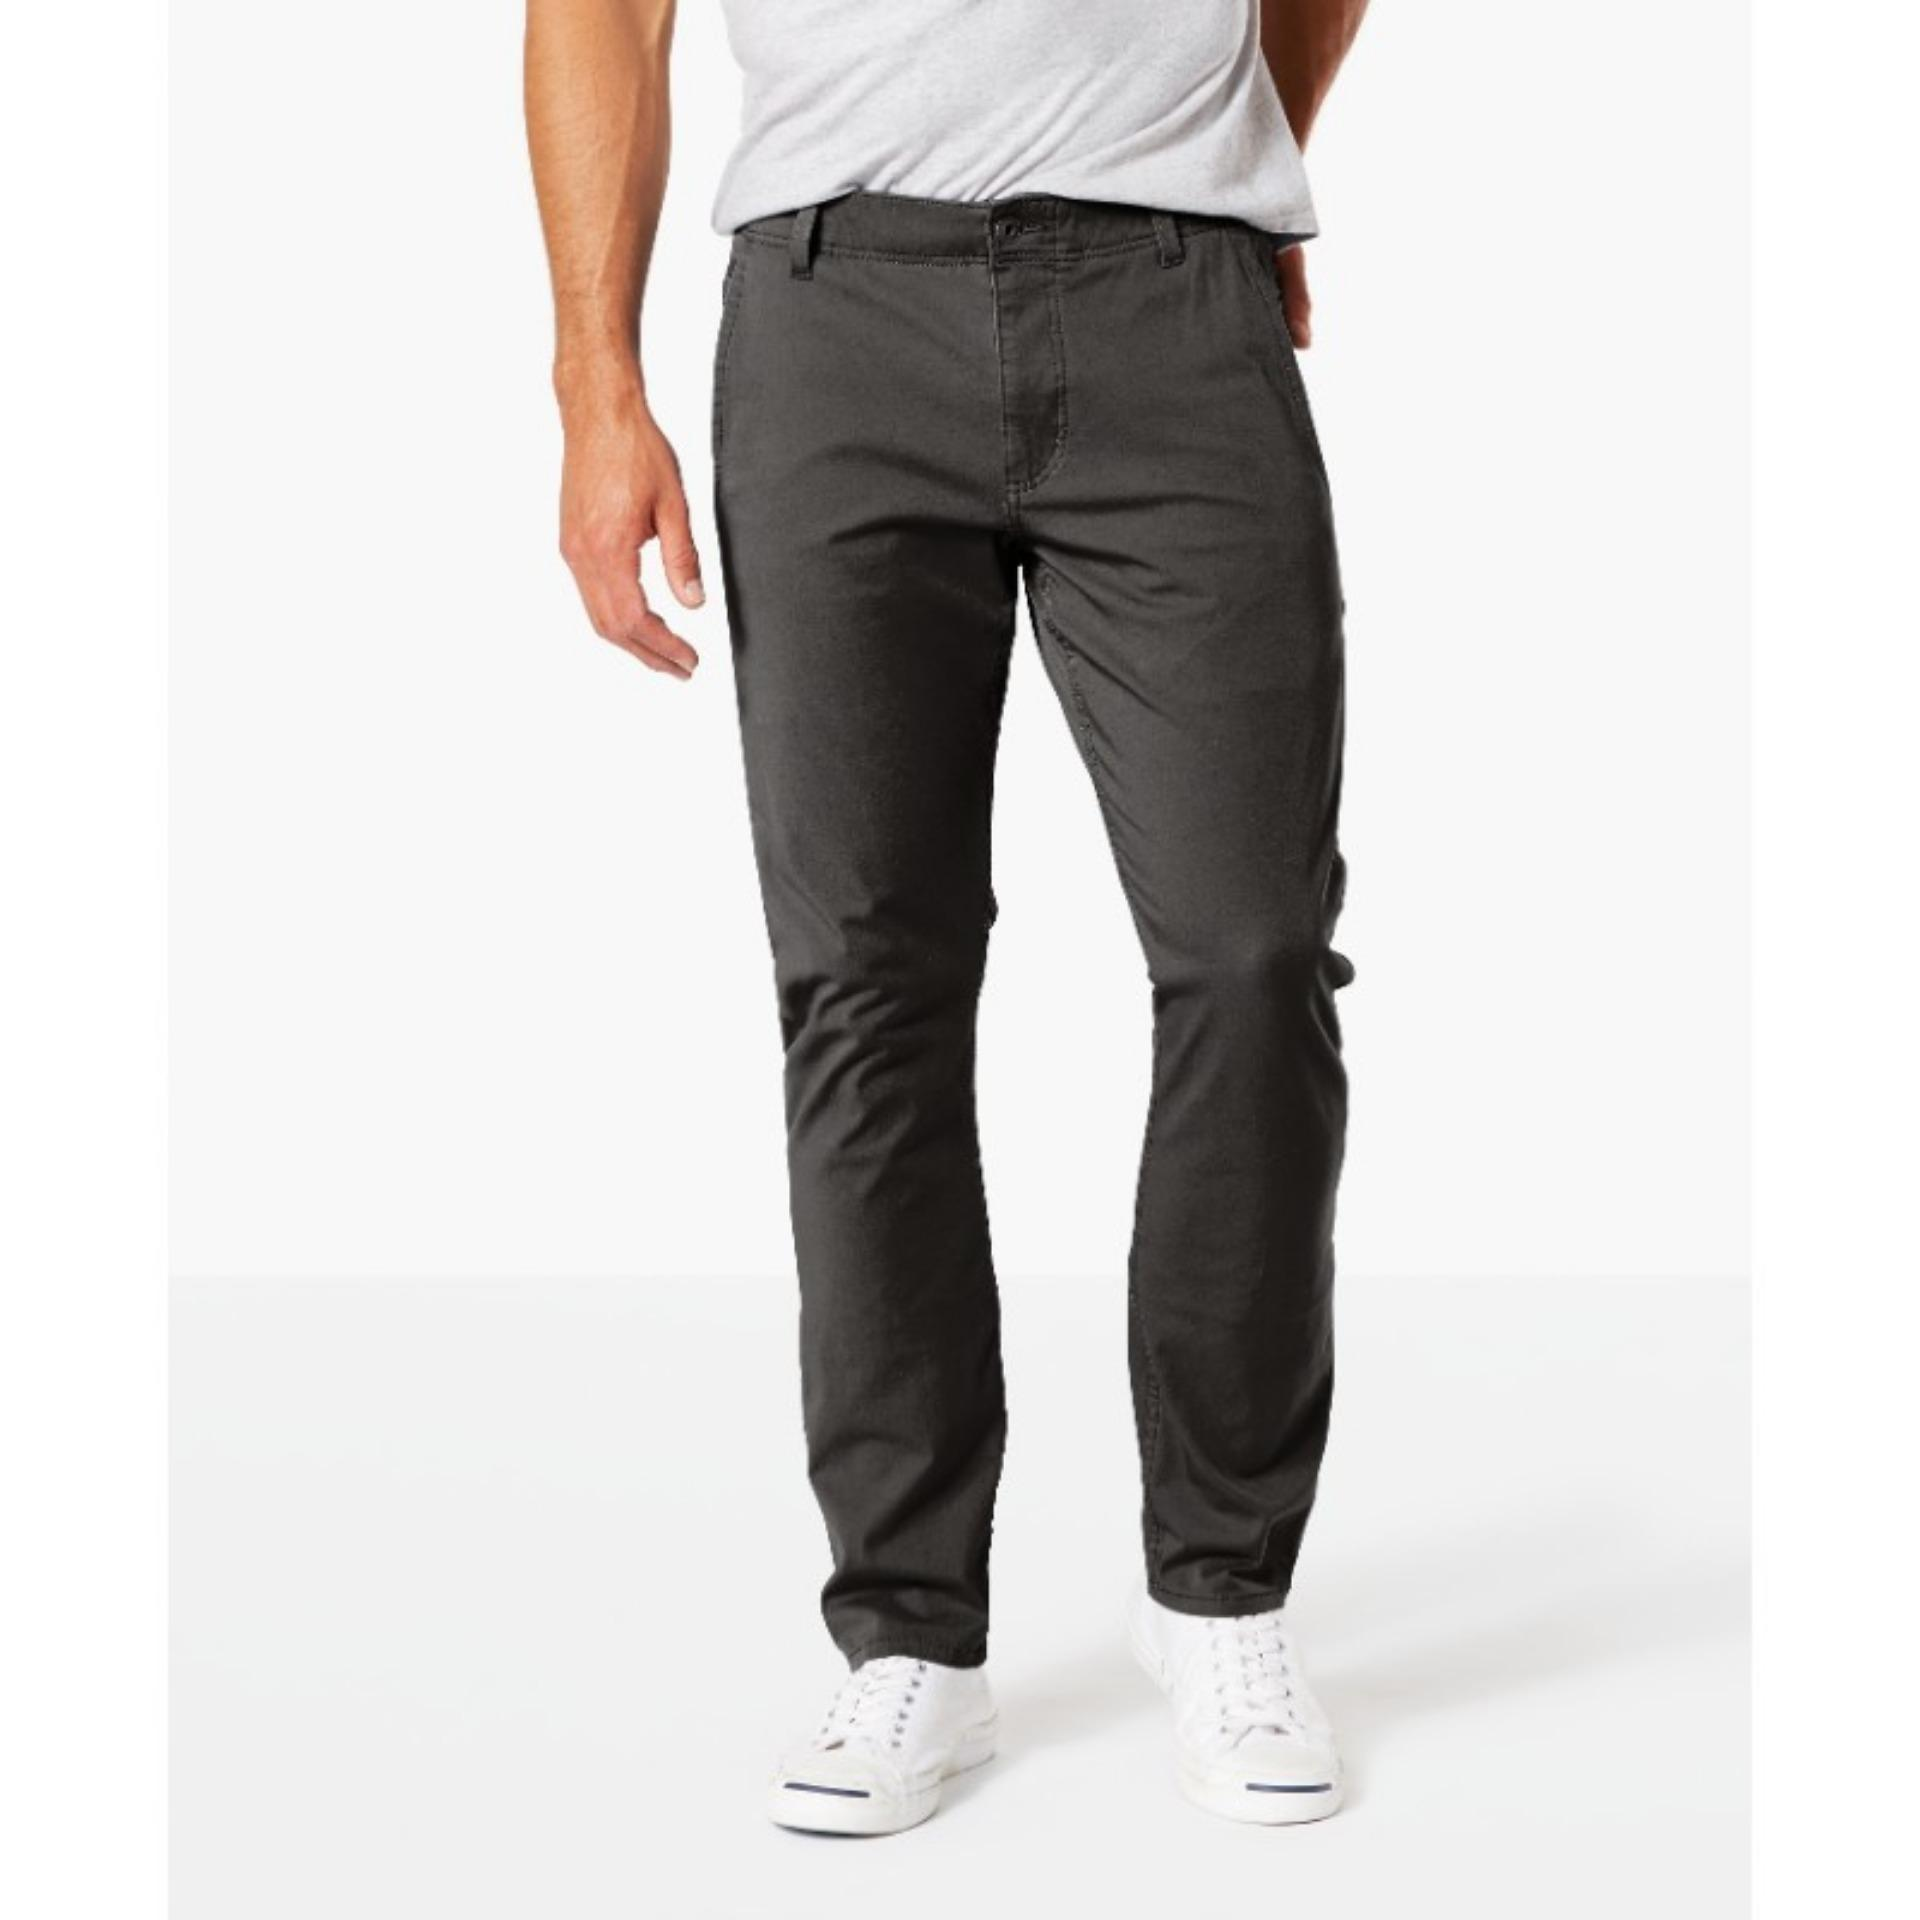 Dockers Alpha Khaki 360 Skinny Pants Steelhead